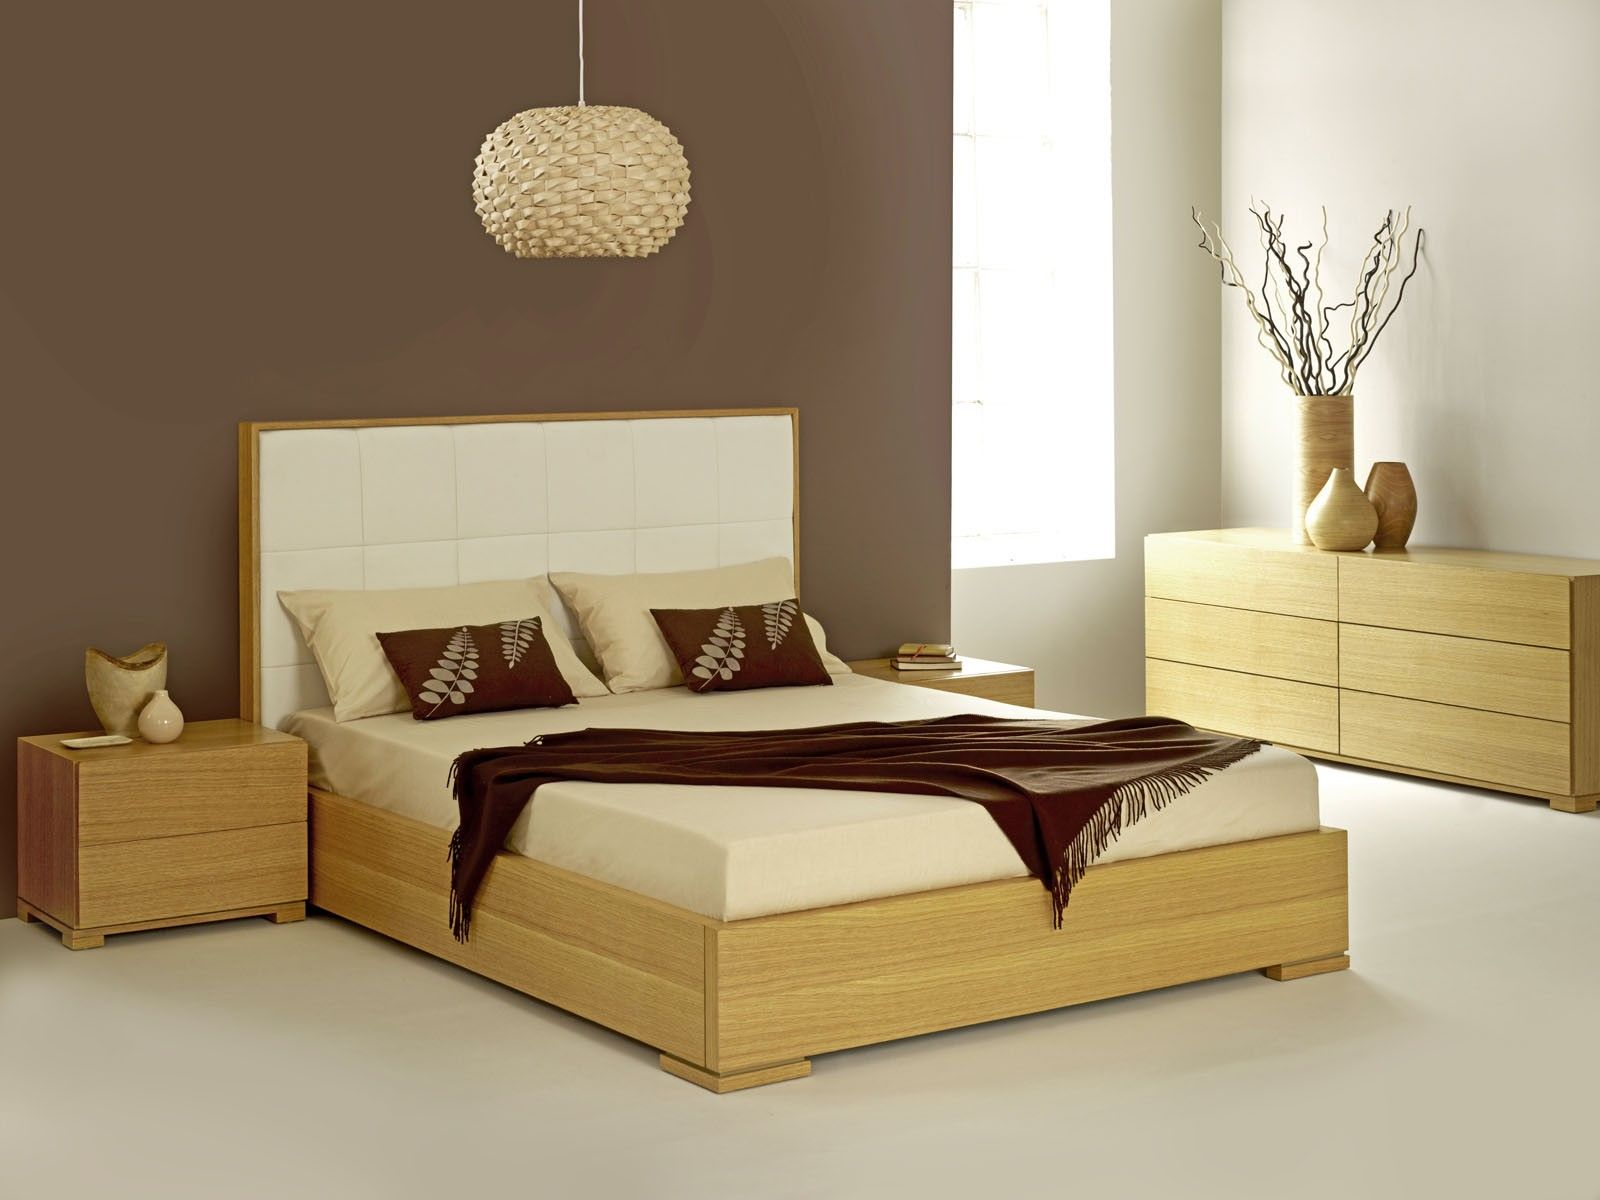 Bunk Bed Designs Raised Garden Bed Designs Bed Design Ideas Bed Design Plans Bed Designs Simple Bedroom Design Oak Bedroom Furniture Bedroom Design Styles